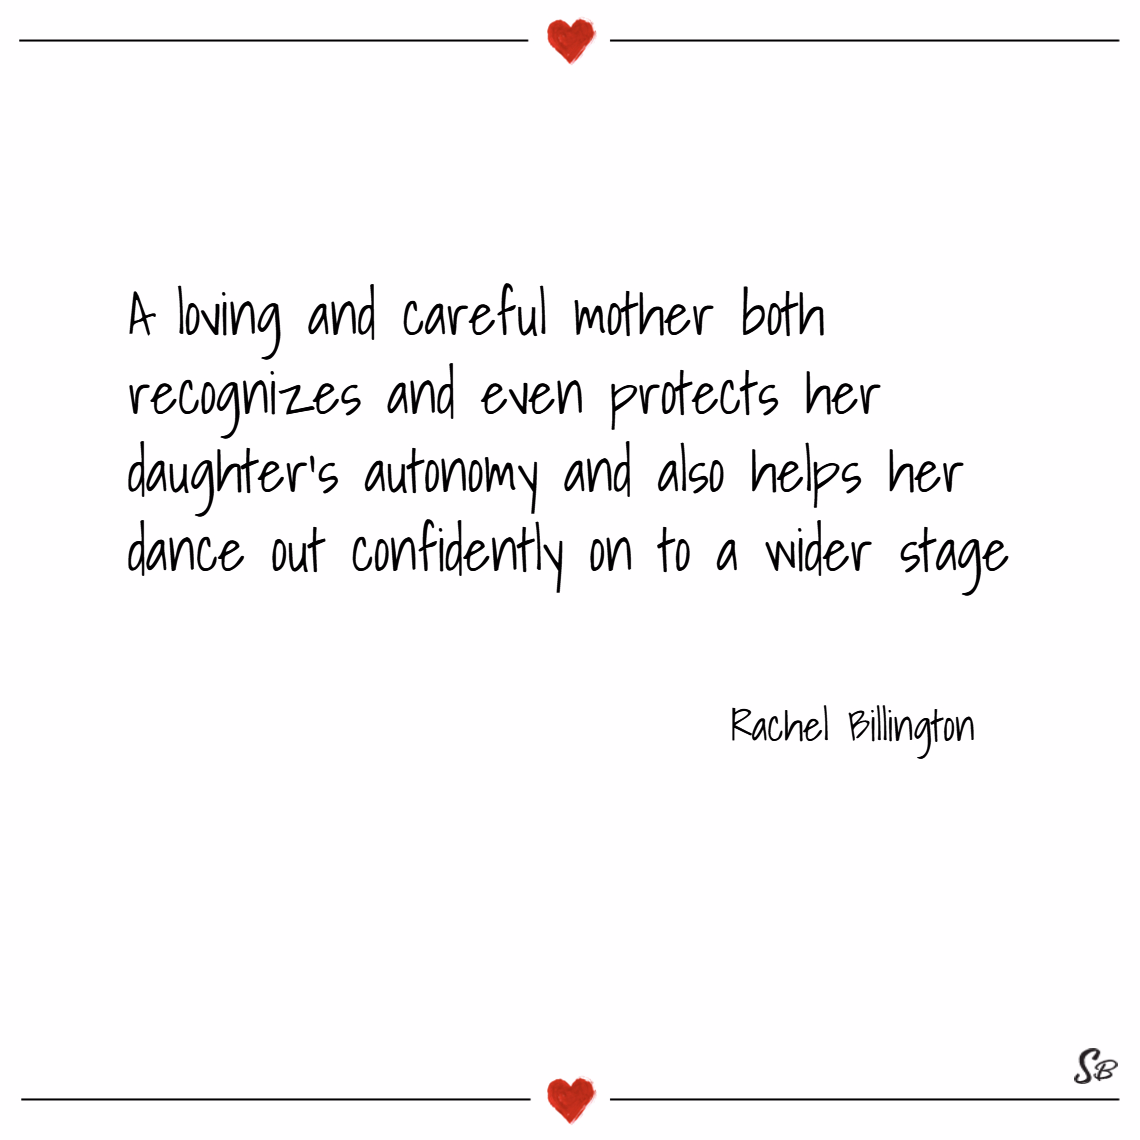 A loving and careful mother both recognizes and even protects her daughter's autonomy and also helps her dance out confidently on to a wider stage. – rachel billington